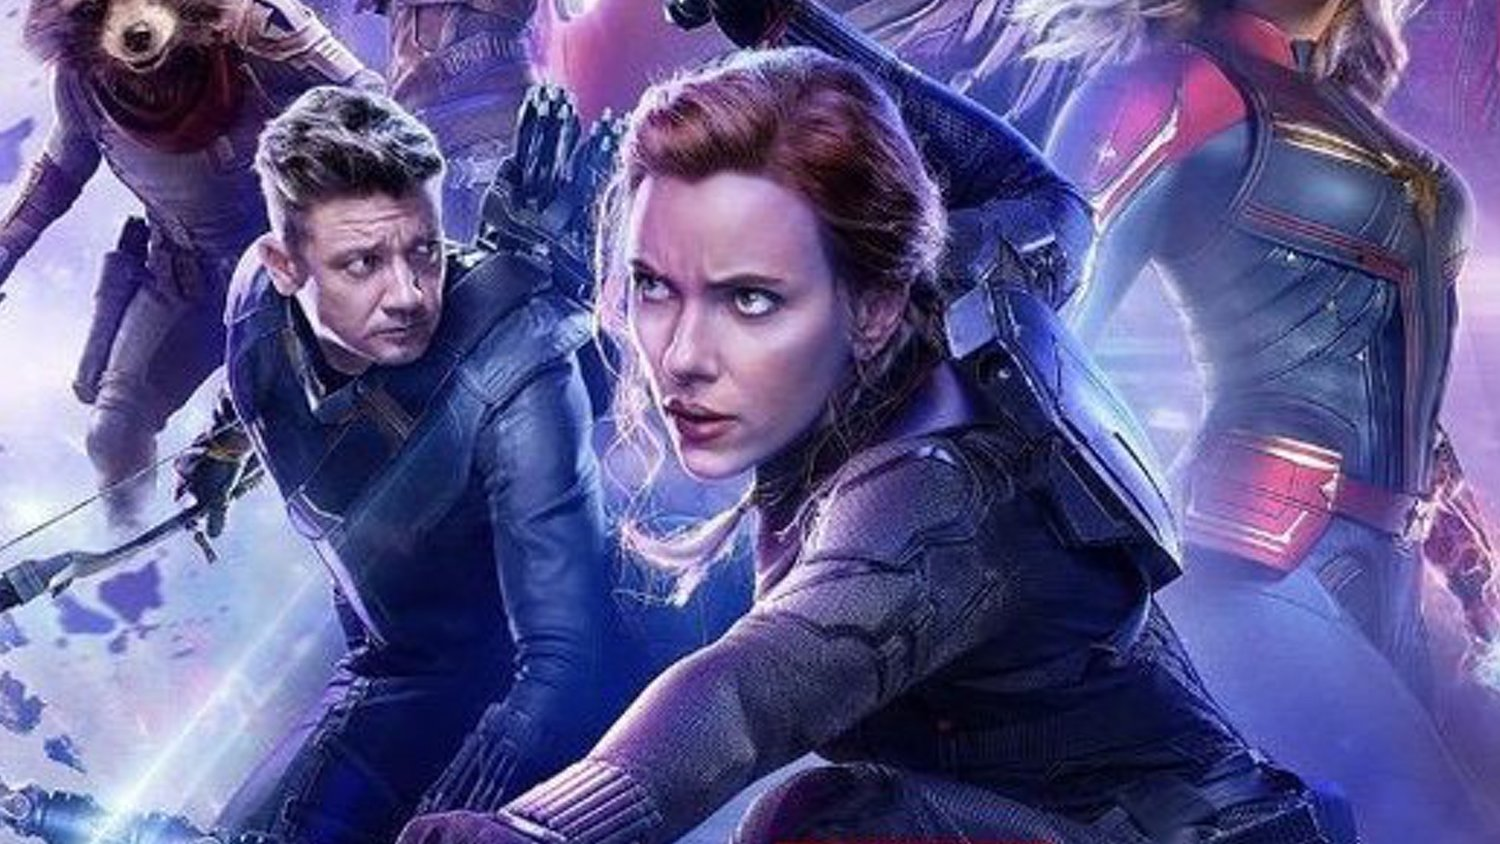 Epic New Chinese Poster For Avengers Endgame Includes All The